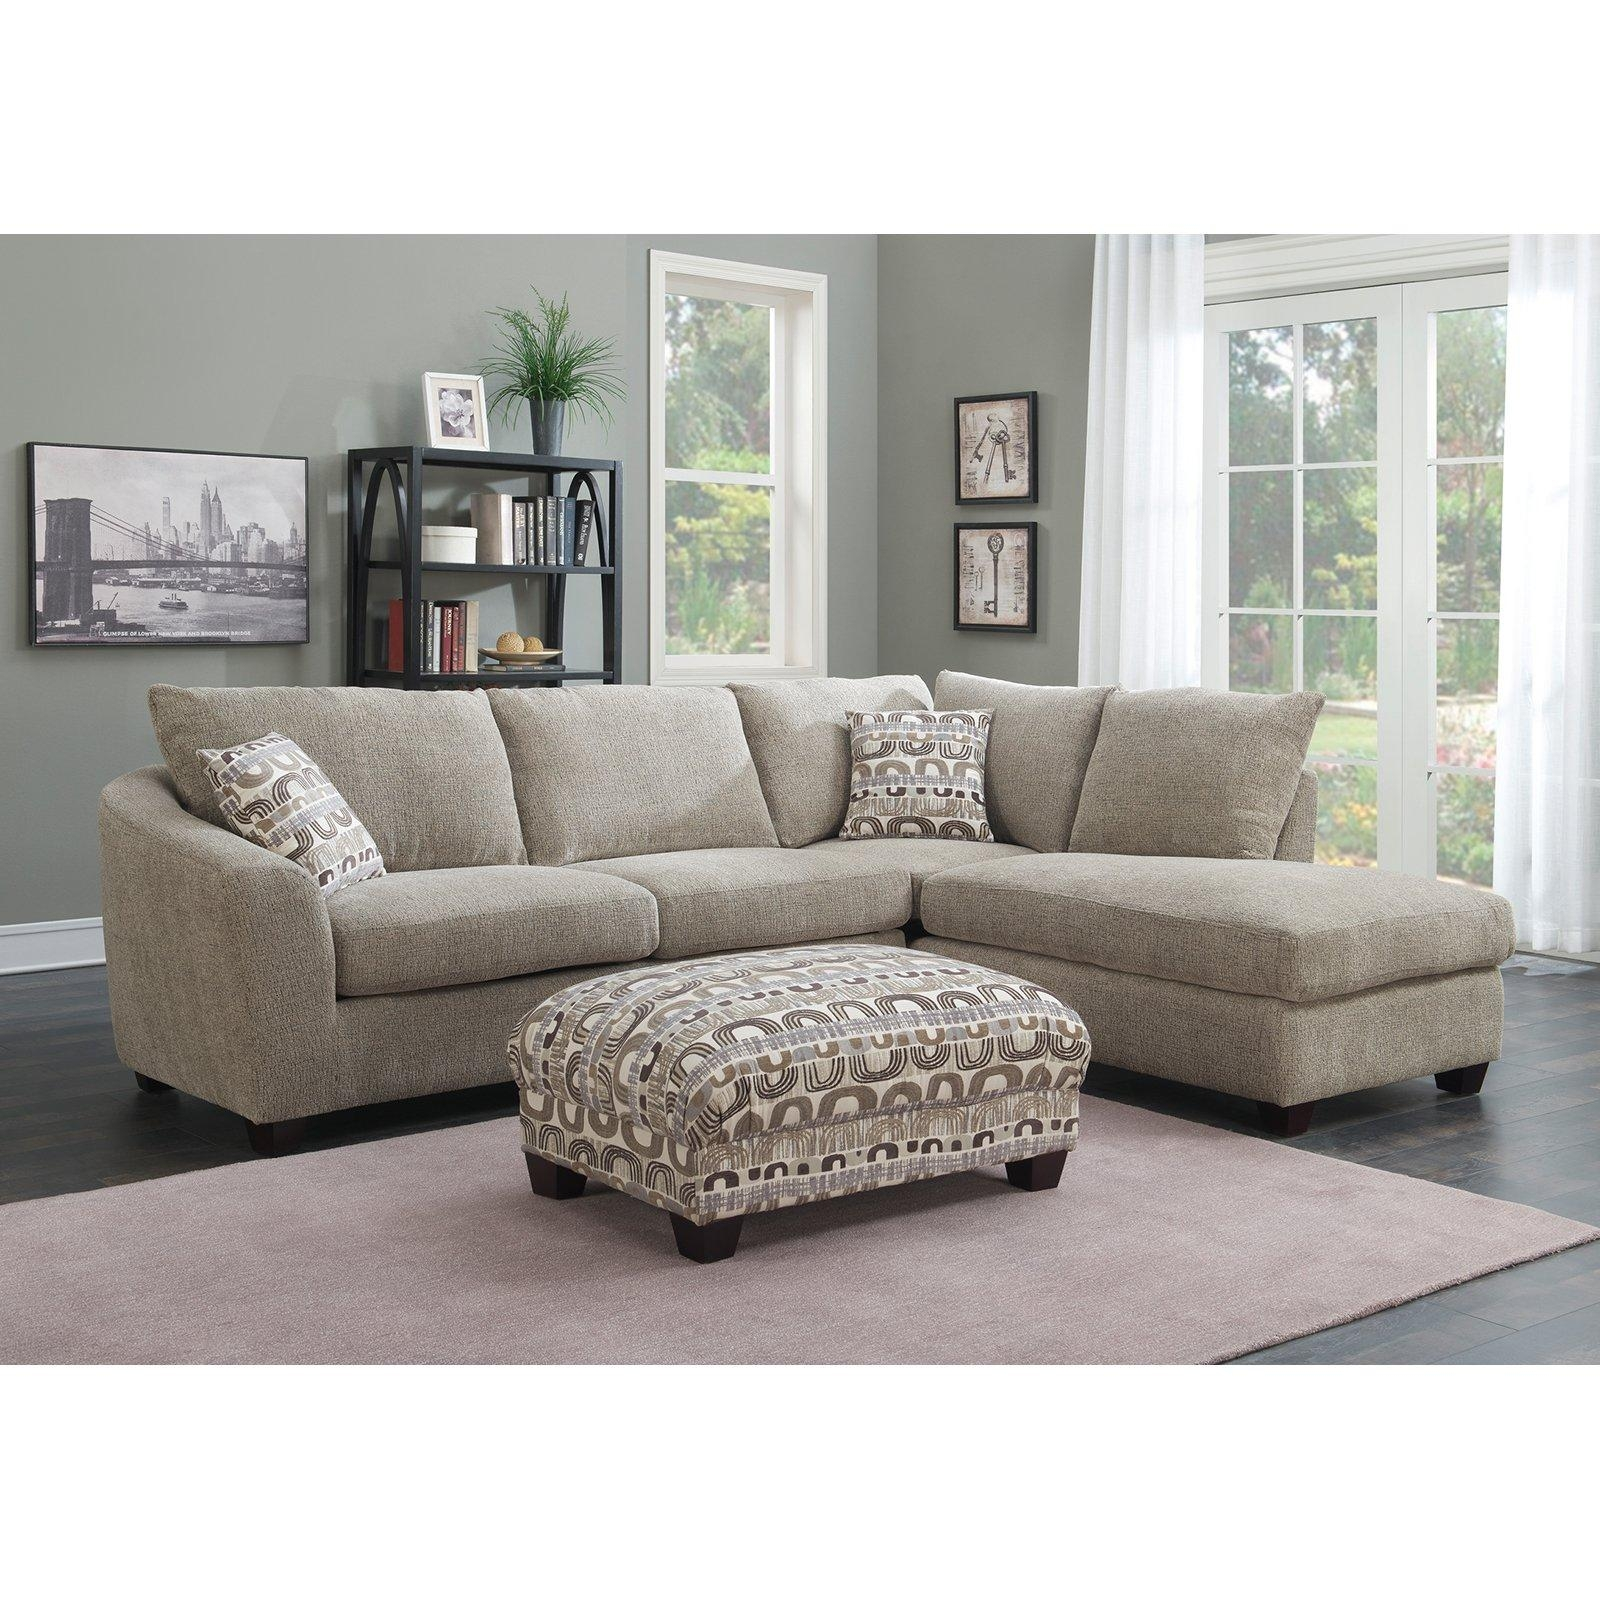 Emerald Home Urbana 2 Piece Sectional Sofa With Chaise – Walmart With Regard To Sectional Sofa With 2 Chaises (Image 14 of 20)